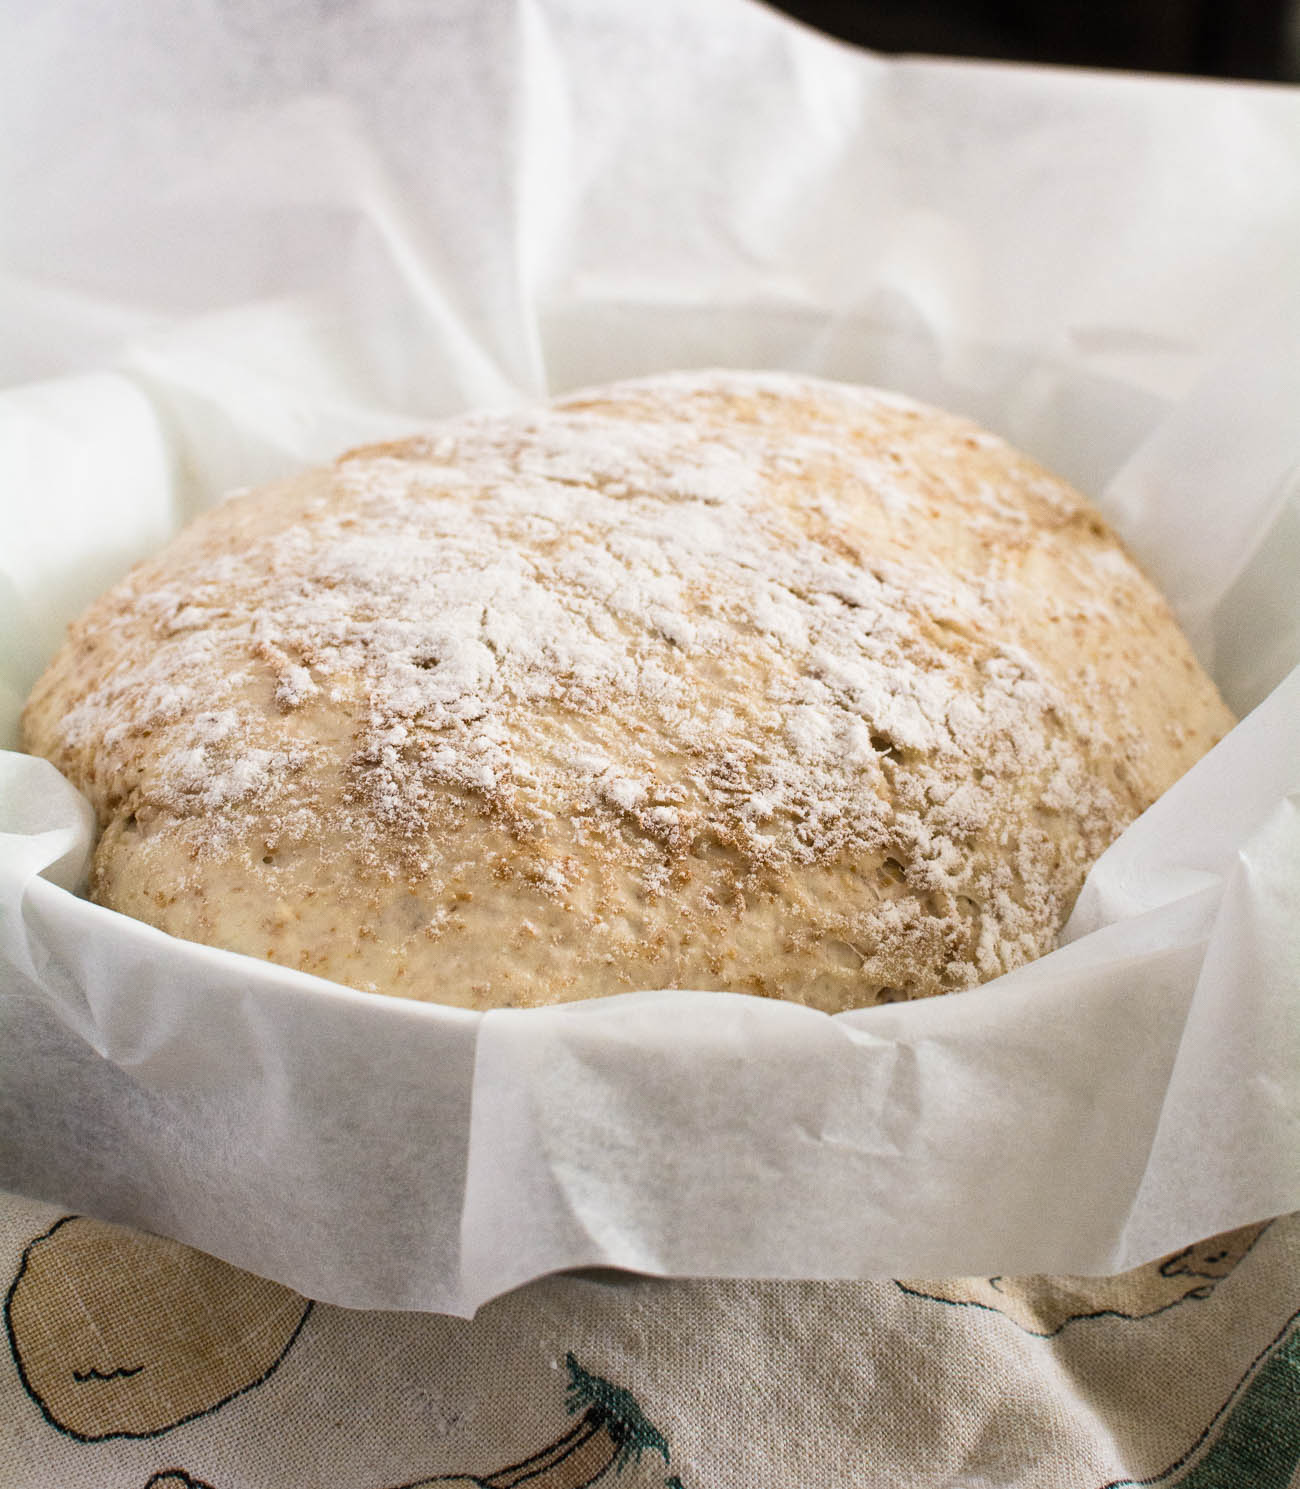 Dutch oven no-knead bread is a great way to get into making bread at home.